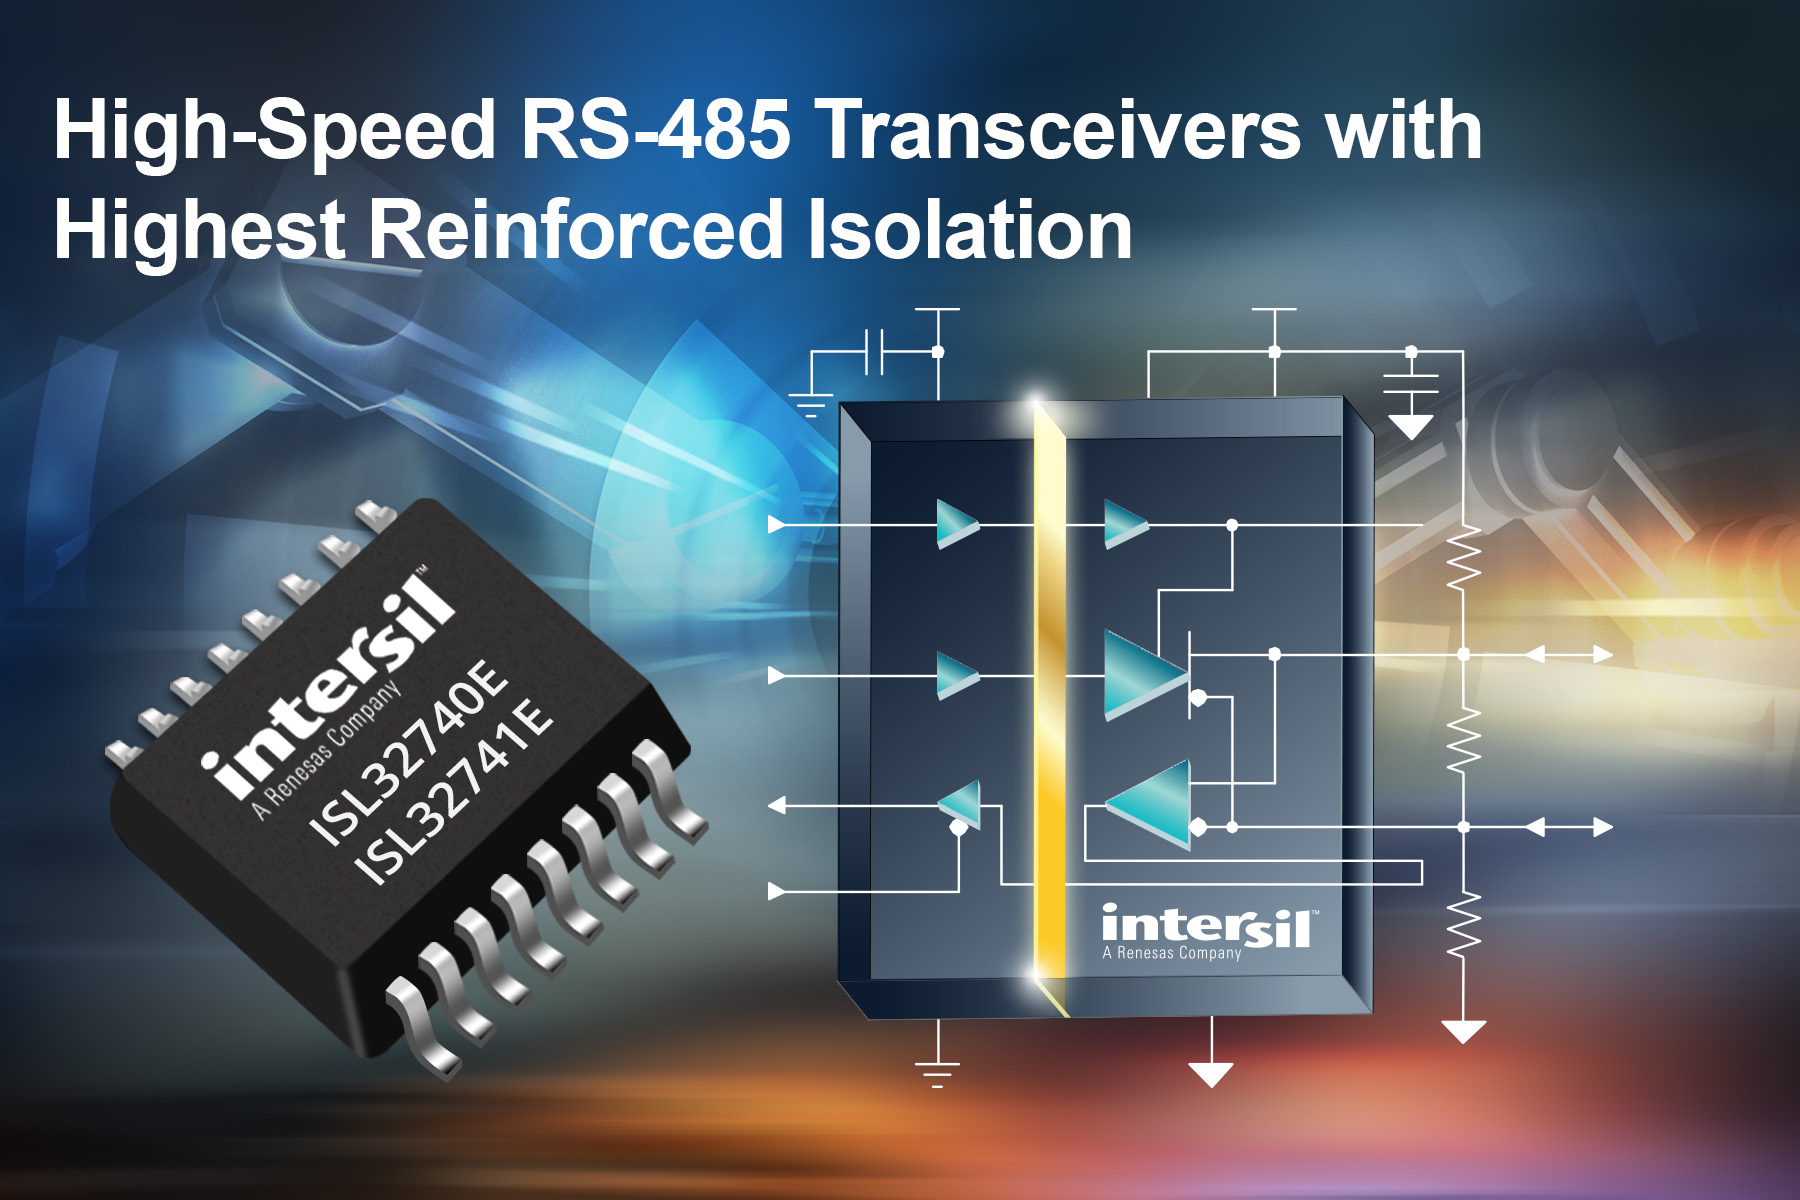 High-Speed Transceivers Deliver Industry's Highest Working Voltage